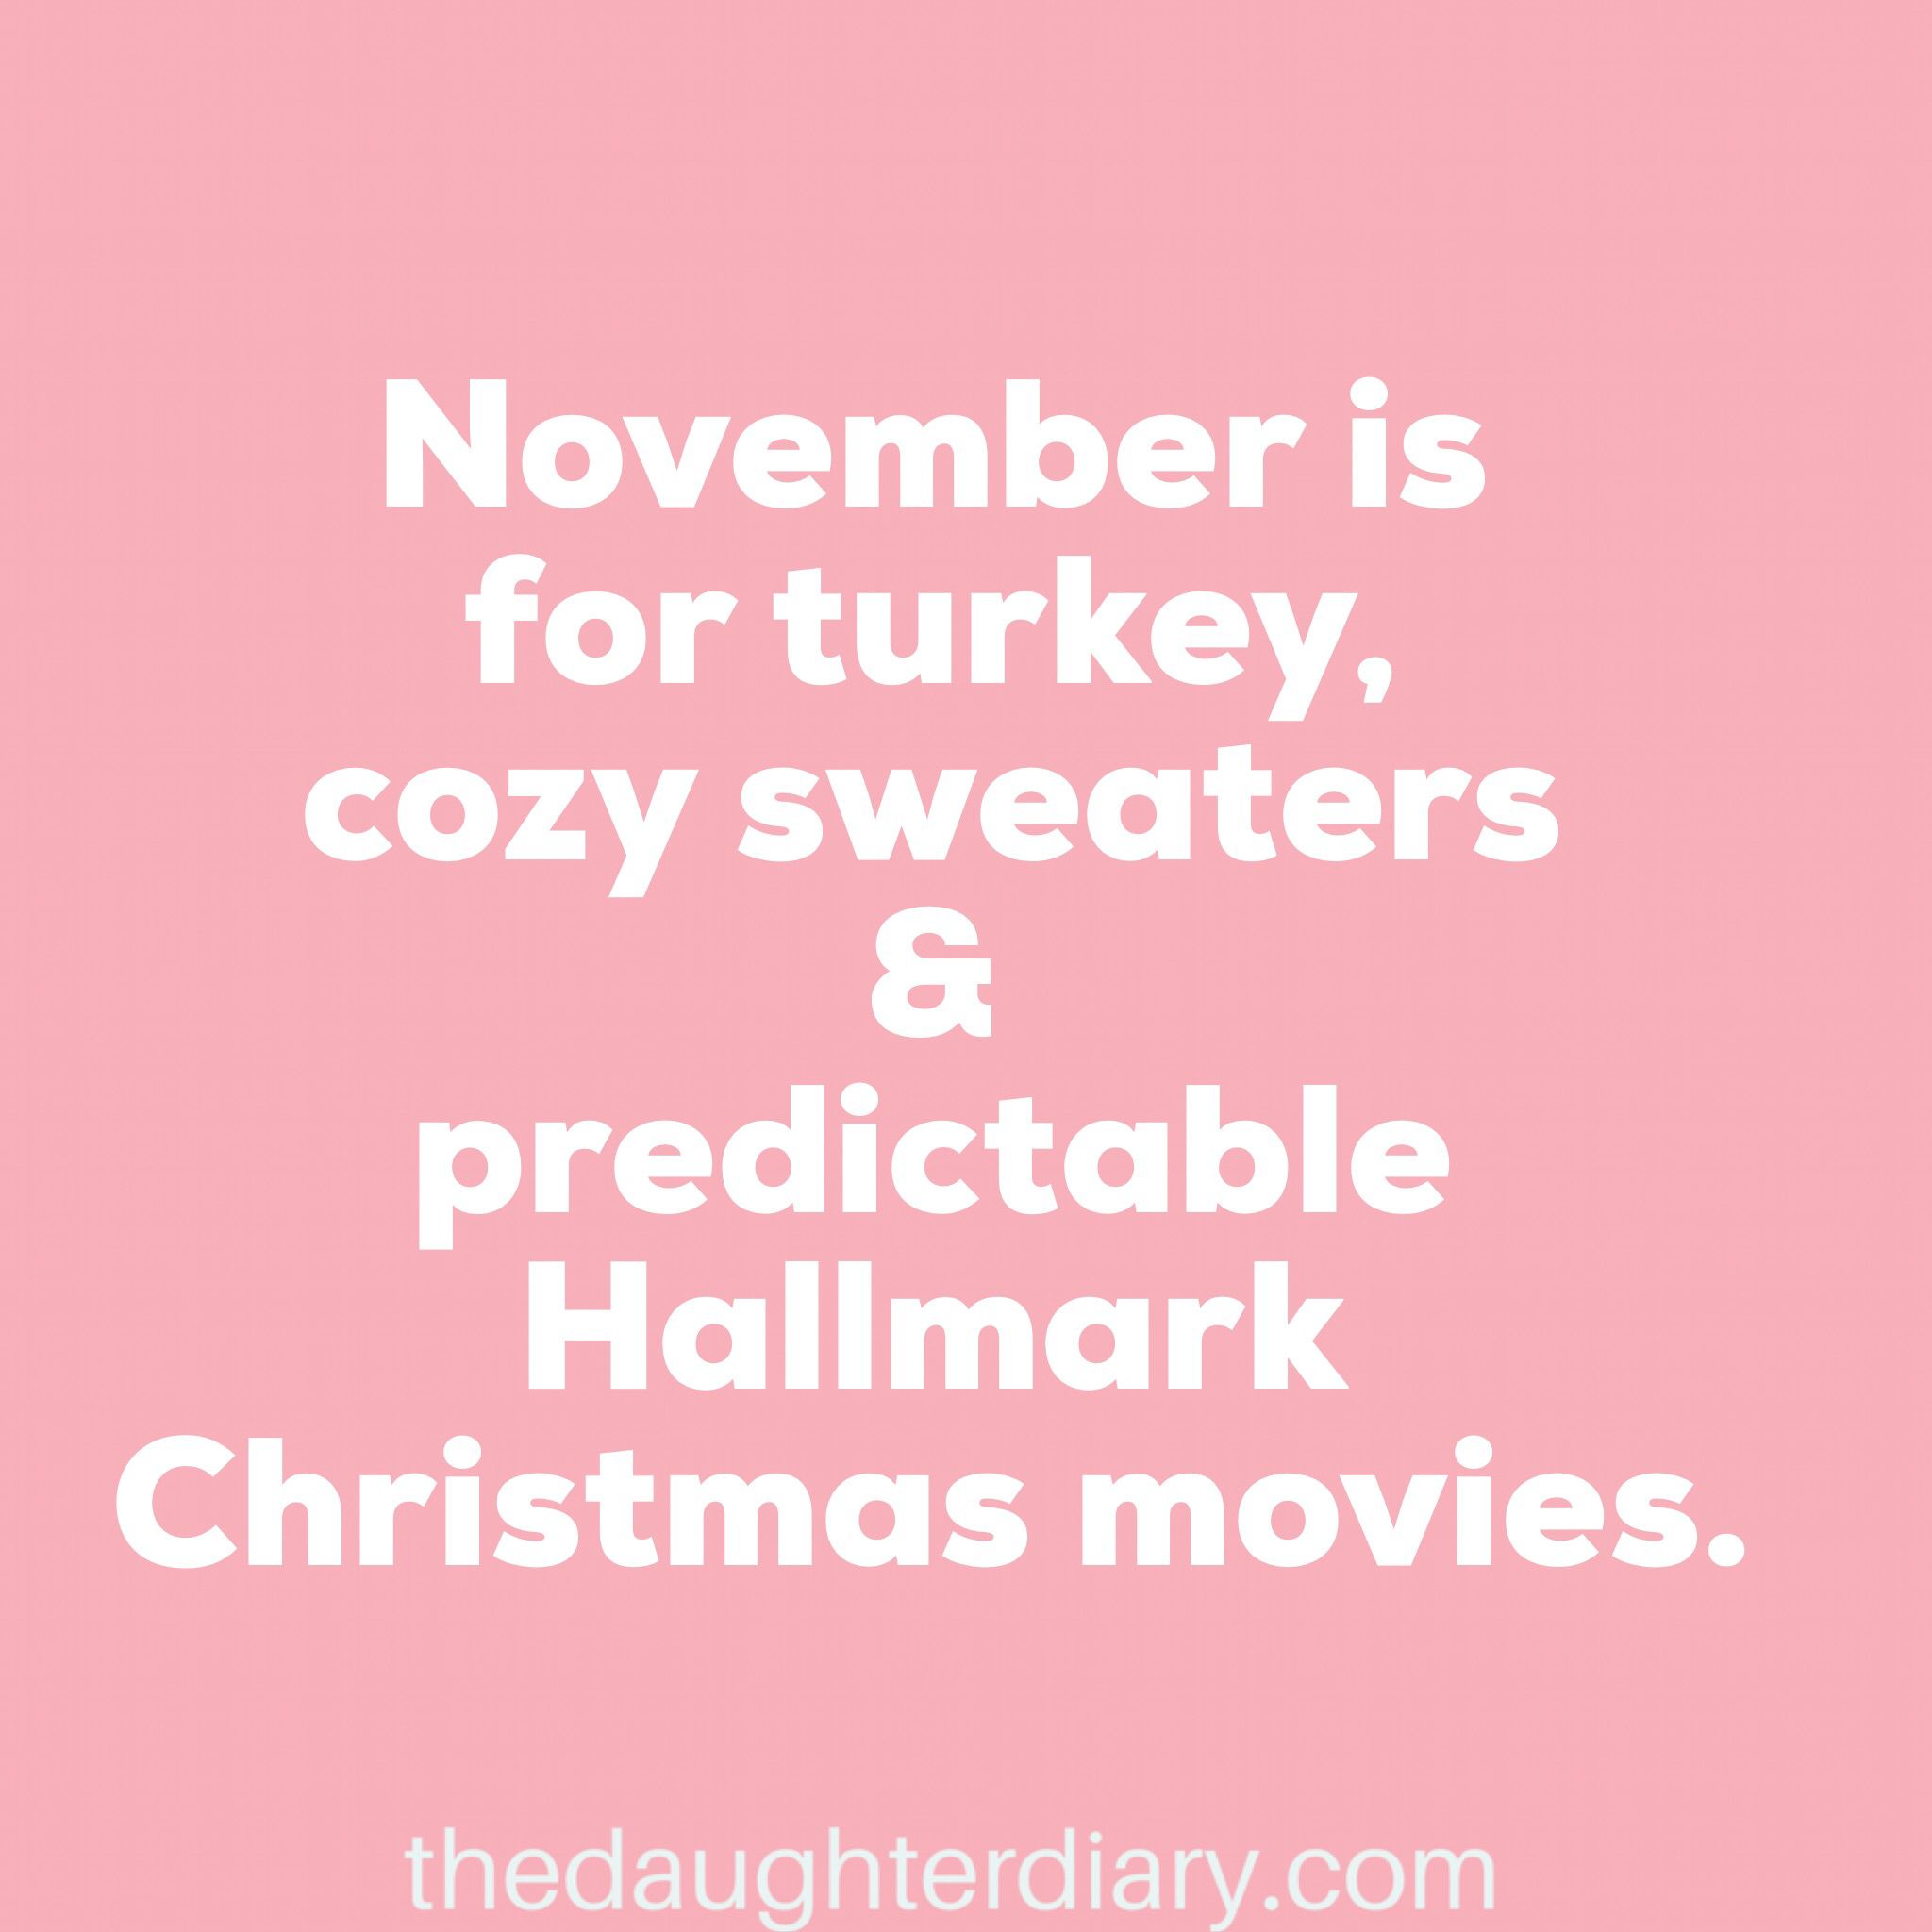 November Quotes Funny Fall Quotes Movie Quotes Funny Christmas Movie Quotes Funny